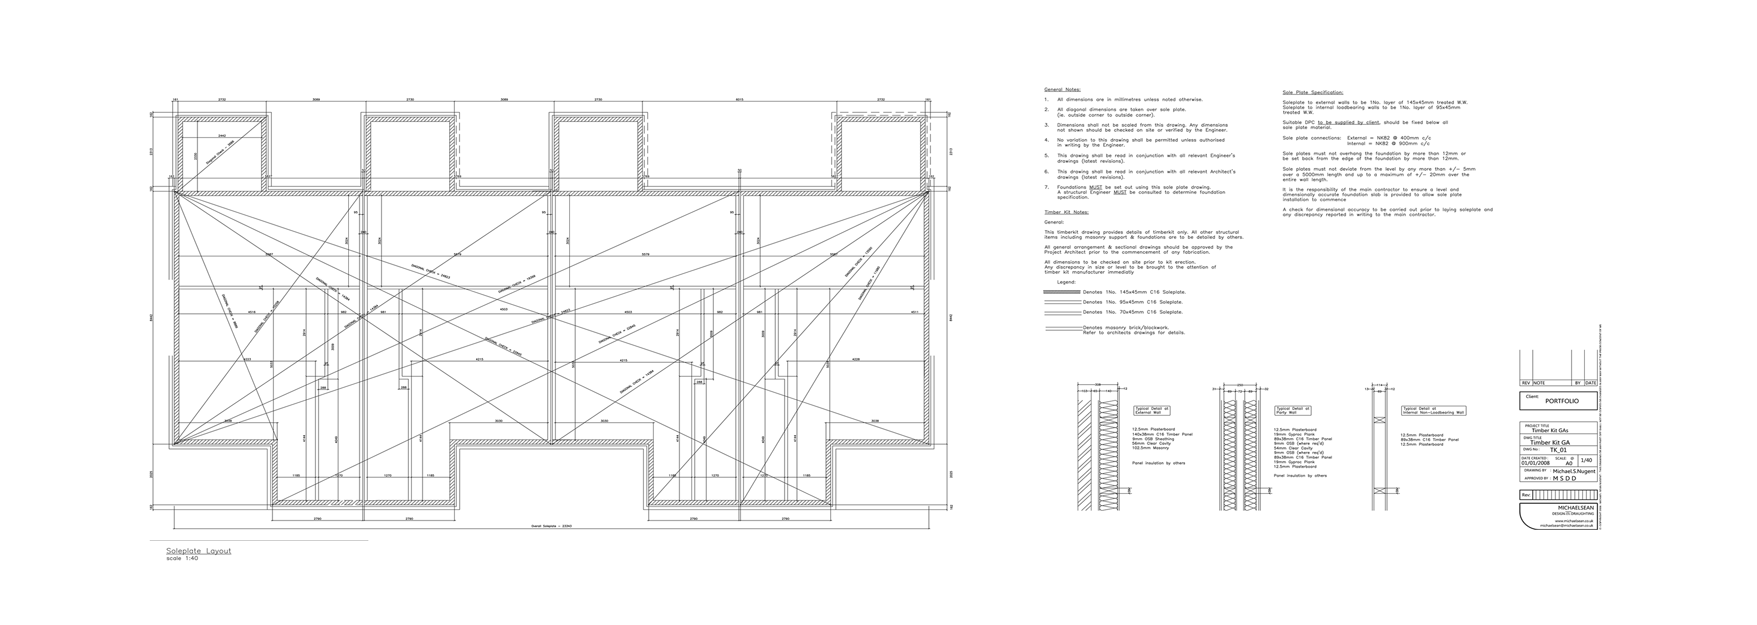 cad timber frame detailing